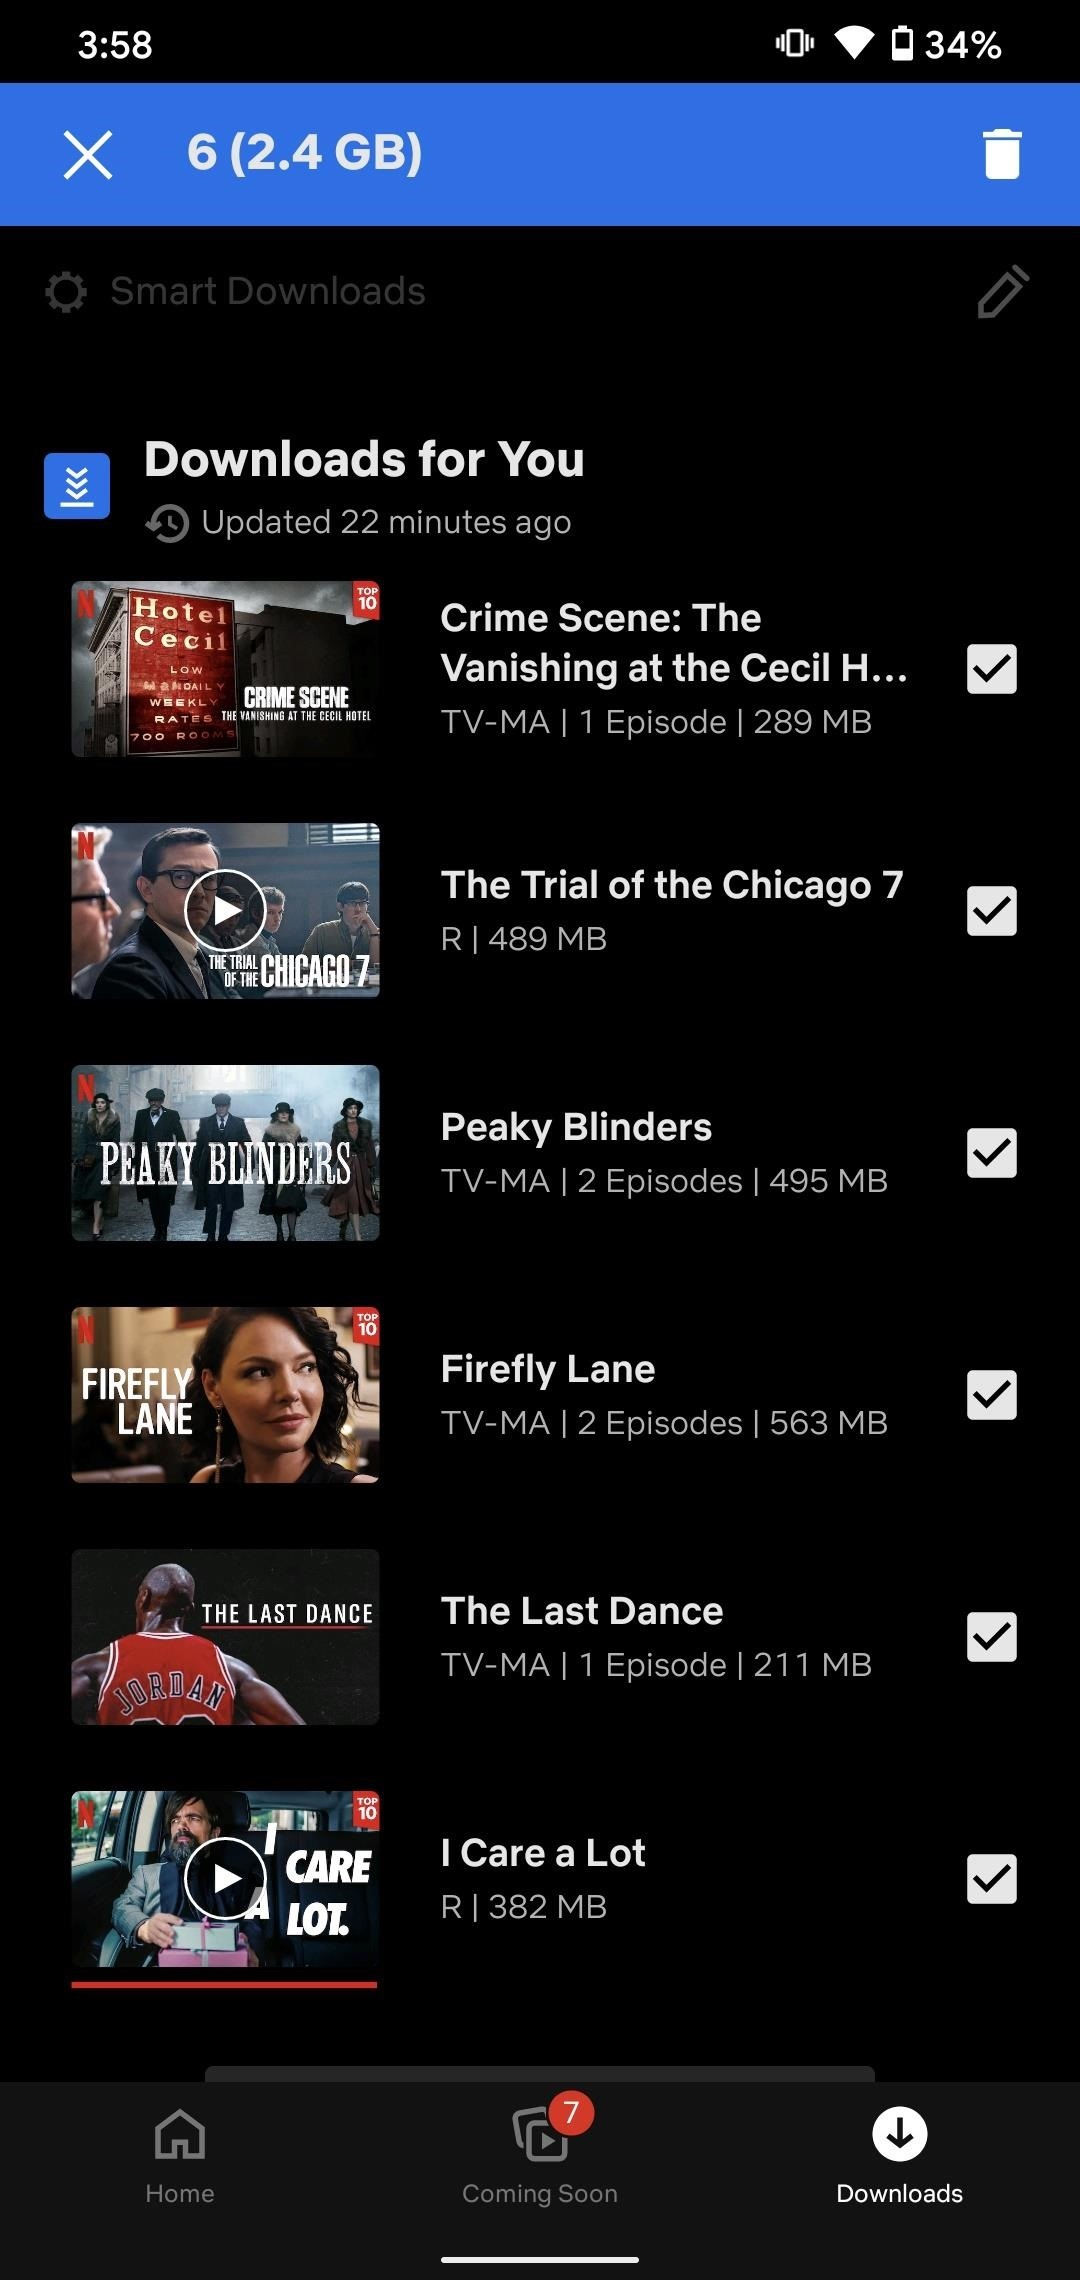 How to Get Netflix to Auto-Download Shows & Movies to Your Phone Based on Your Interests